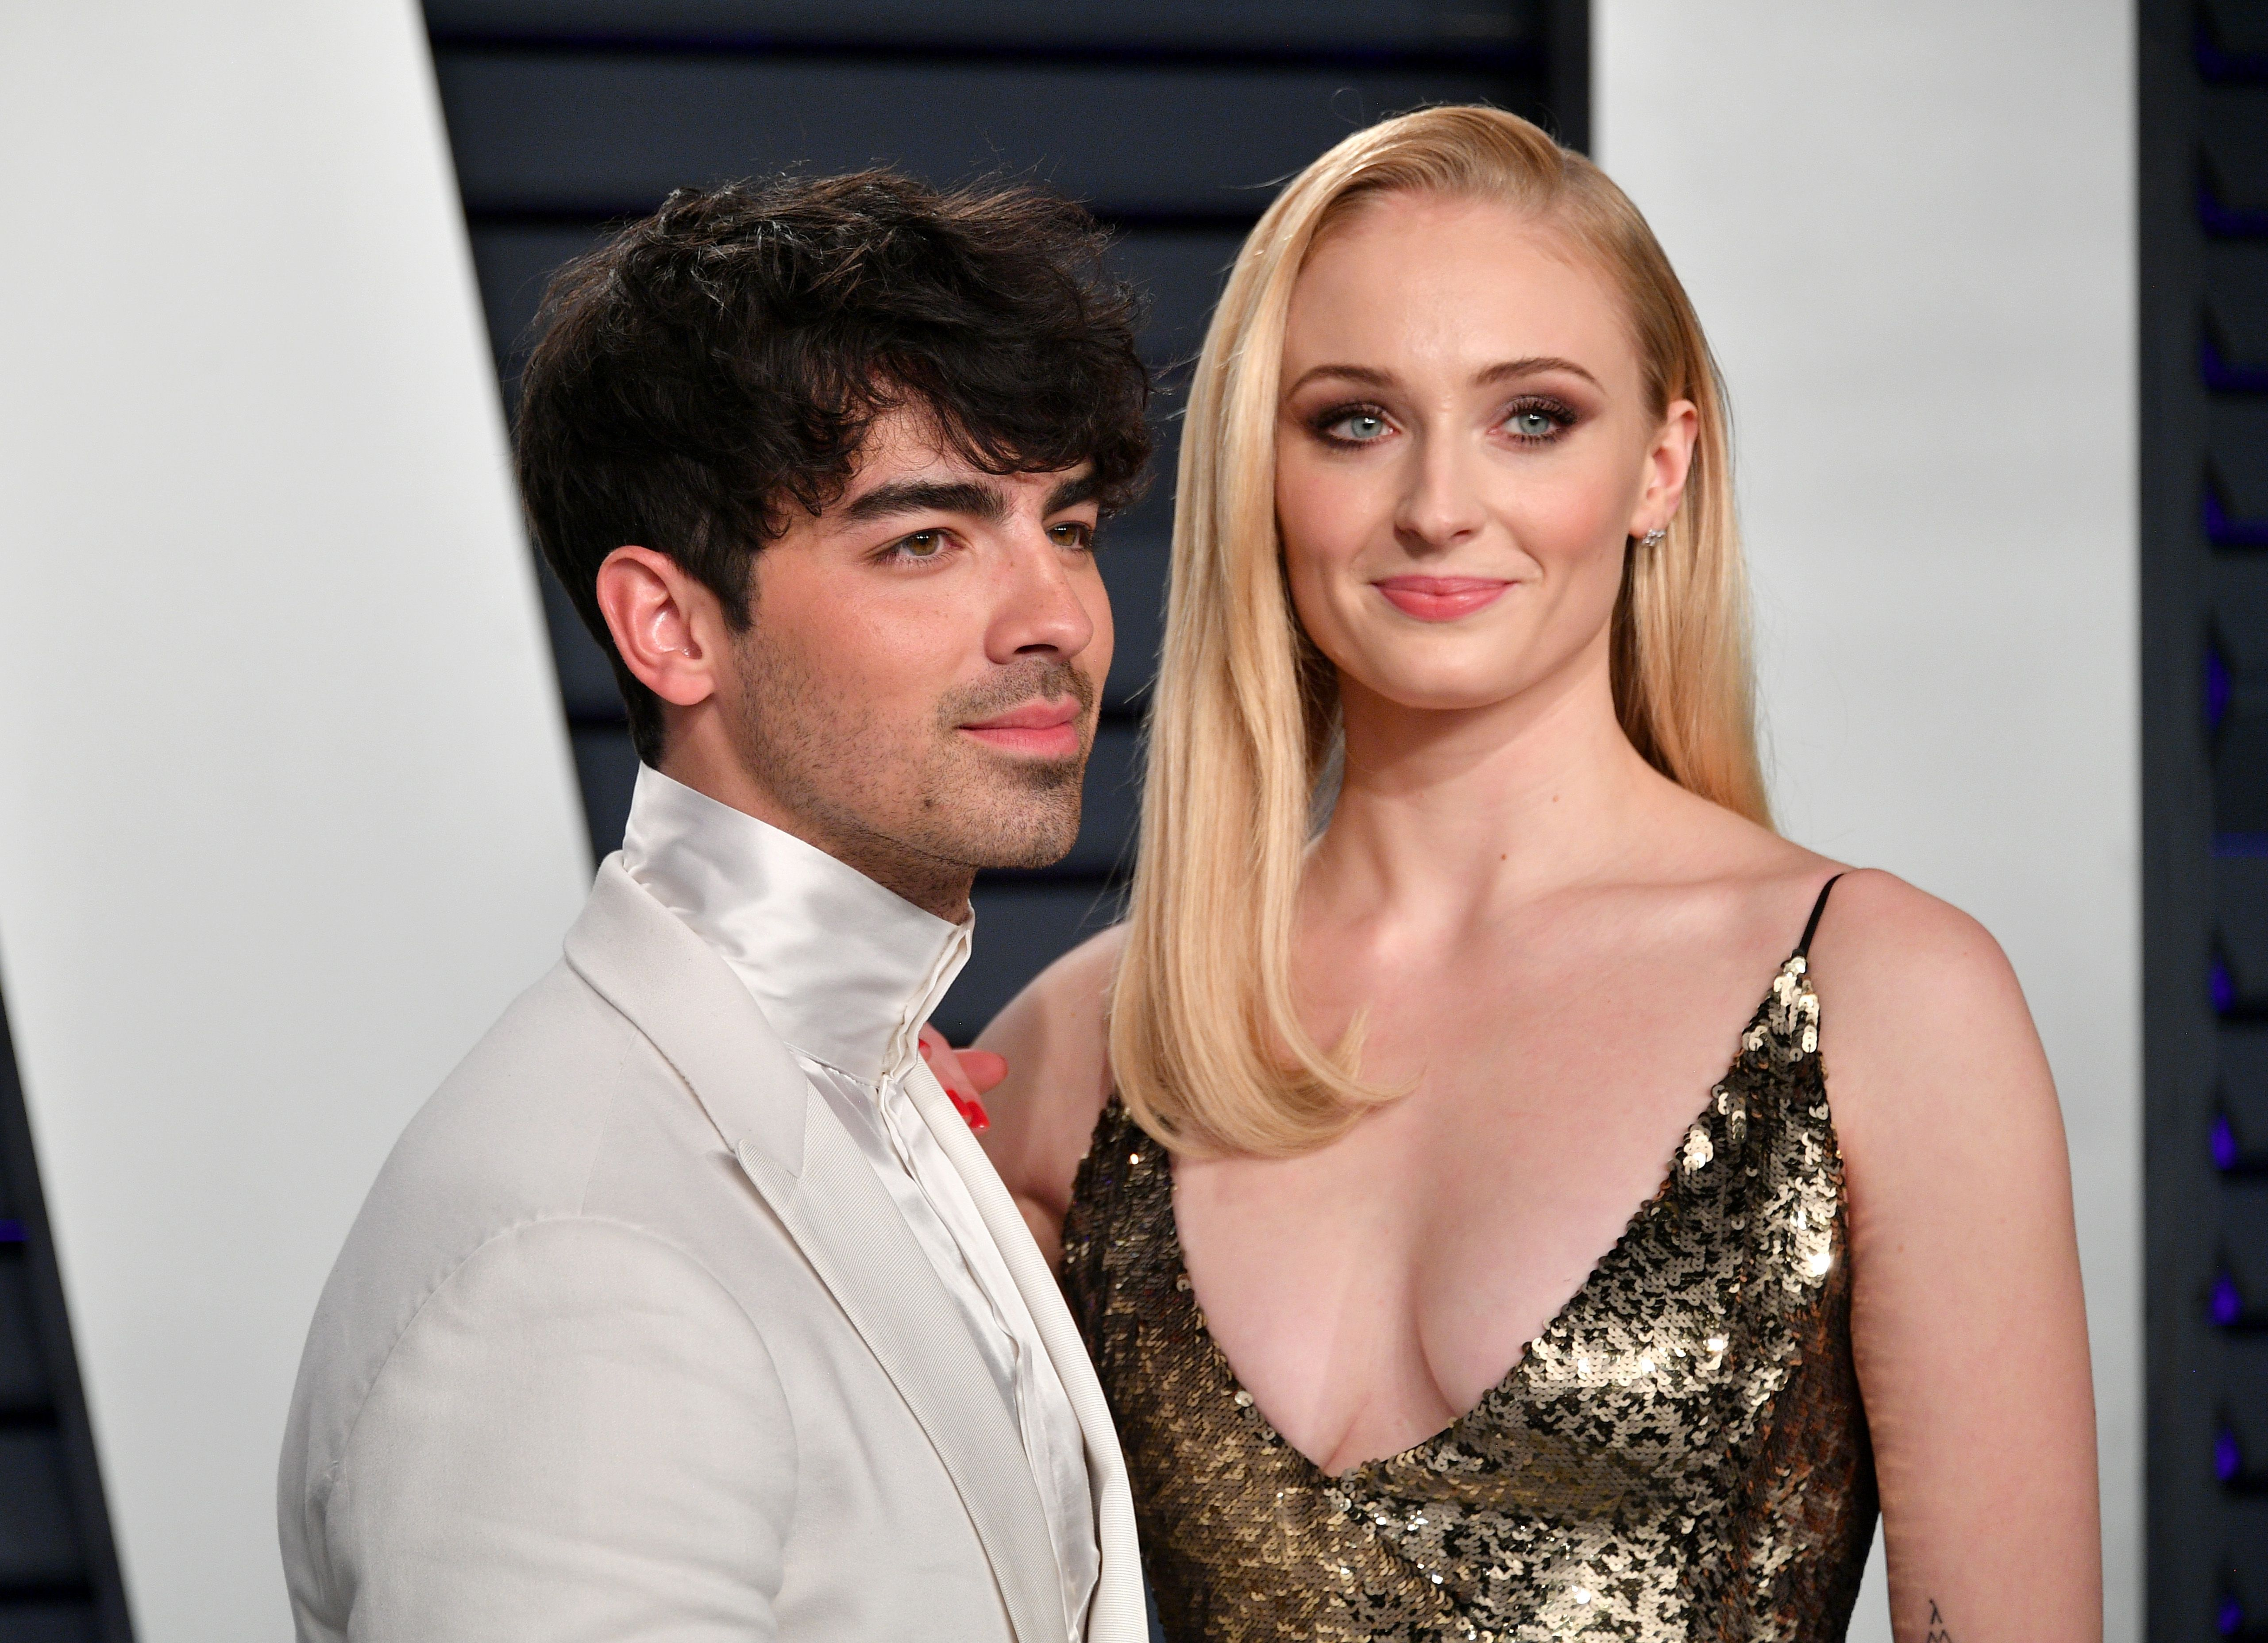 Joe Jonas and Sophie Turner during the 2019 Vanity Fair Oscar Party at Wallis Annenberg Center for the Performing Arts on February 24, 2019 in Beverly Hills, California. | Source: Getty Images